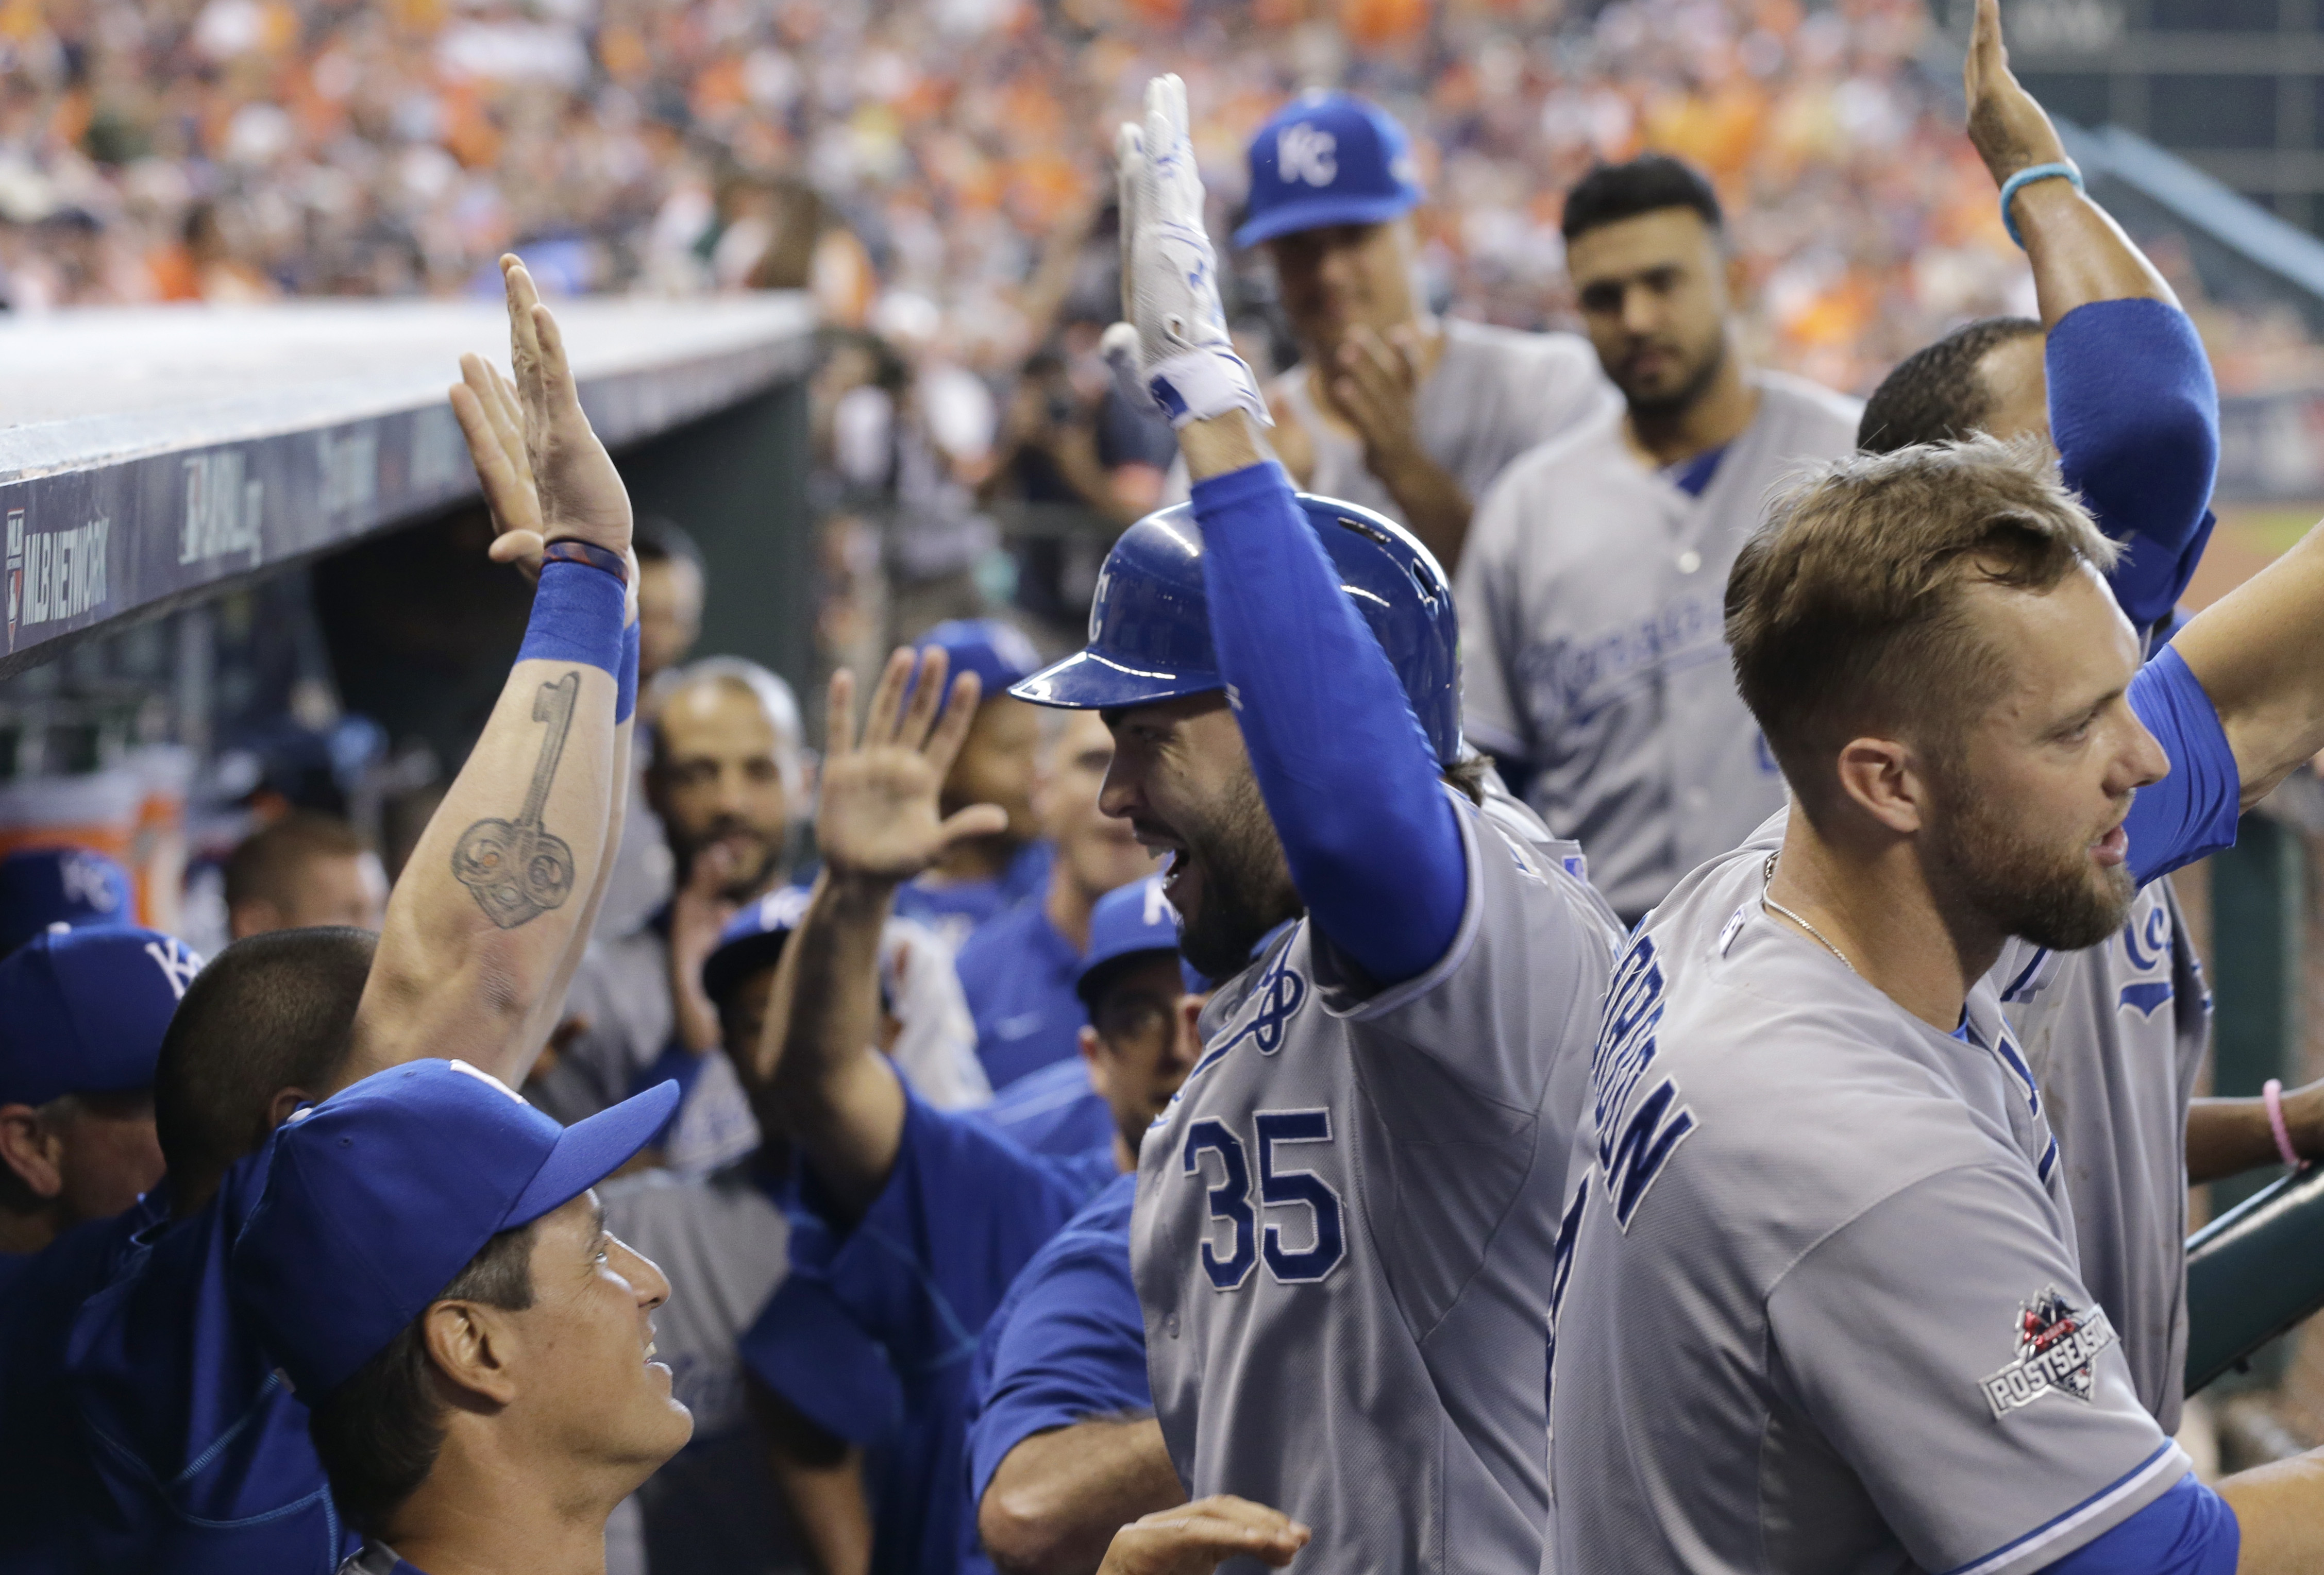 Kansas City Royals' Eric Hosmer, center, celebrates with teammates after his two-run home run against the Houston Astros in the ninth inning during Game 4 of baseball's American League Division Series, Monday, Oct. 12, 2015, in Houston. (AP Photo/David J.